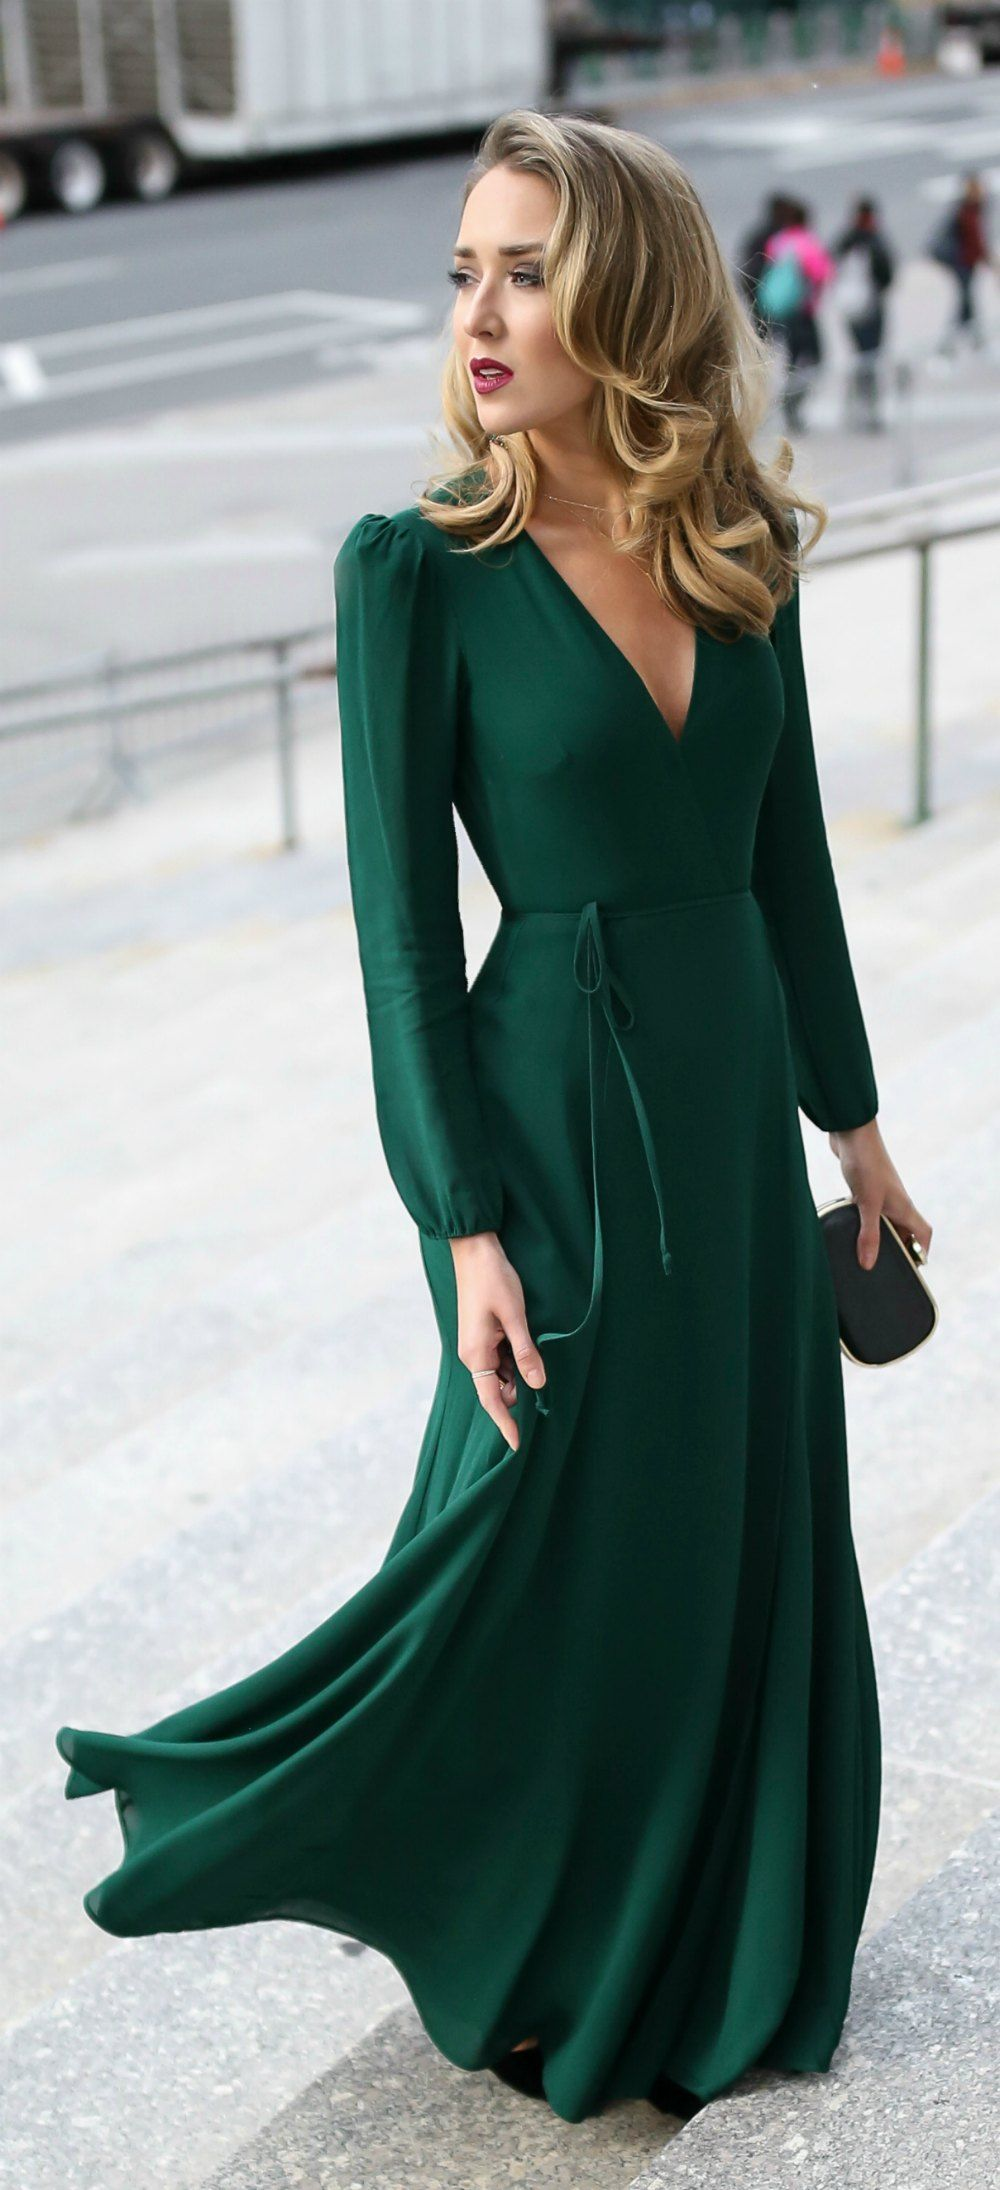 30 DRESSES IN 30 DAYS  Black Tie Wedding Guest    Emerald green long-sleeve  floor-length wrap dress 86d1ee961